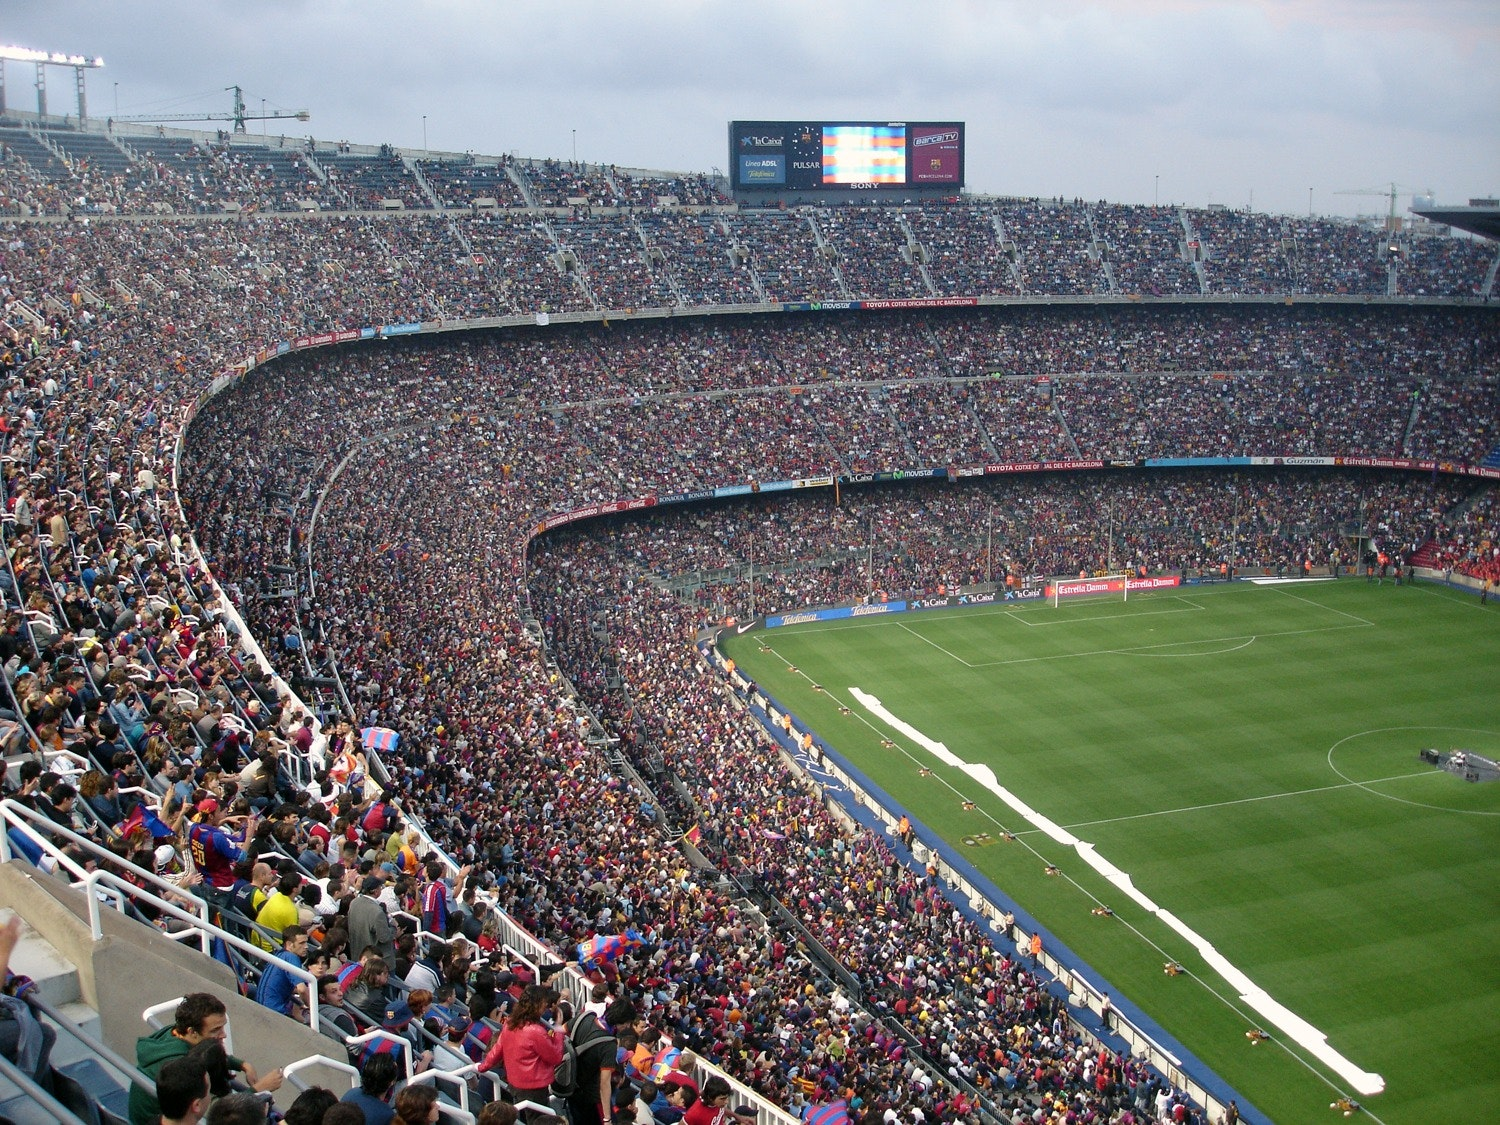 sports fans at a soccer stadium